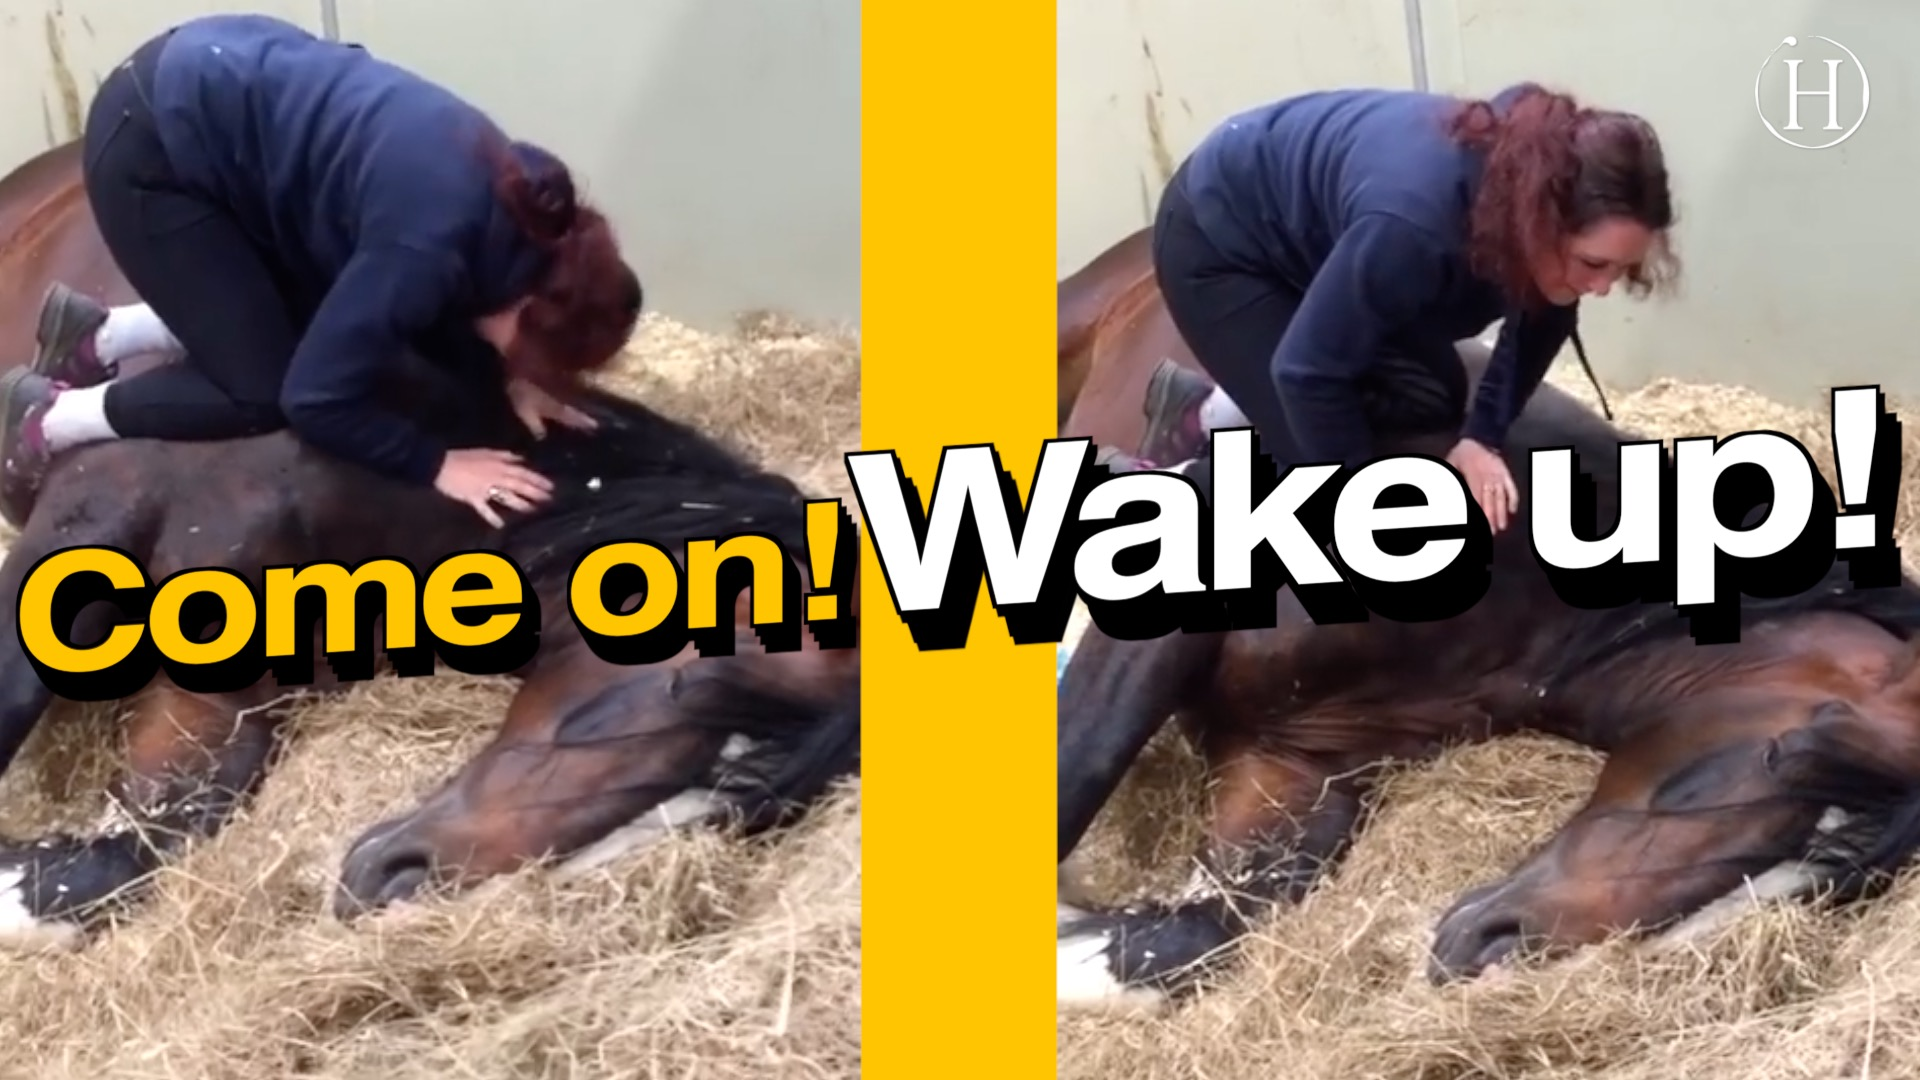 Horse Won't Wake Up for Work | Humanity Life